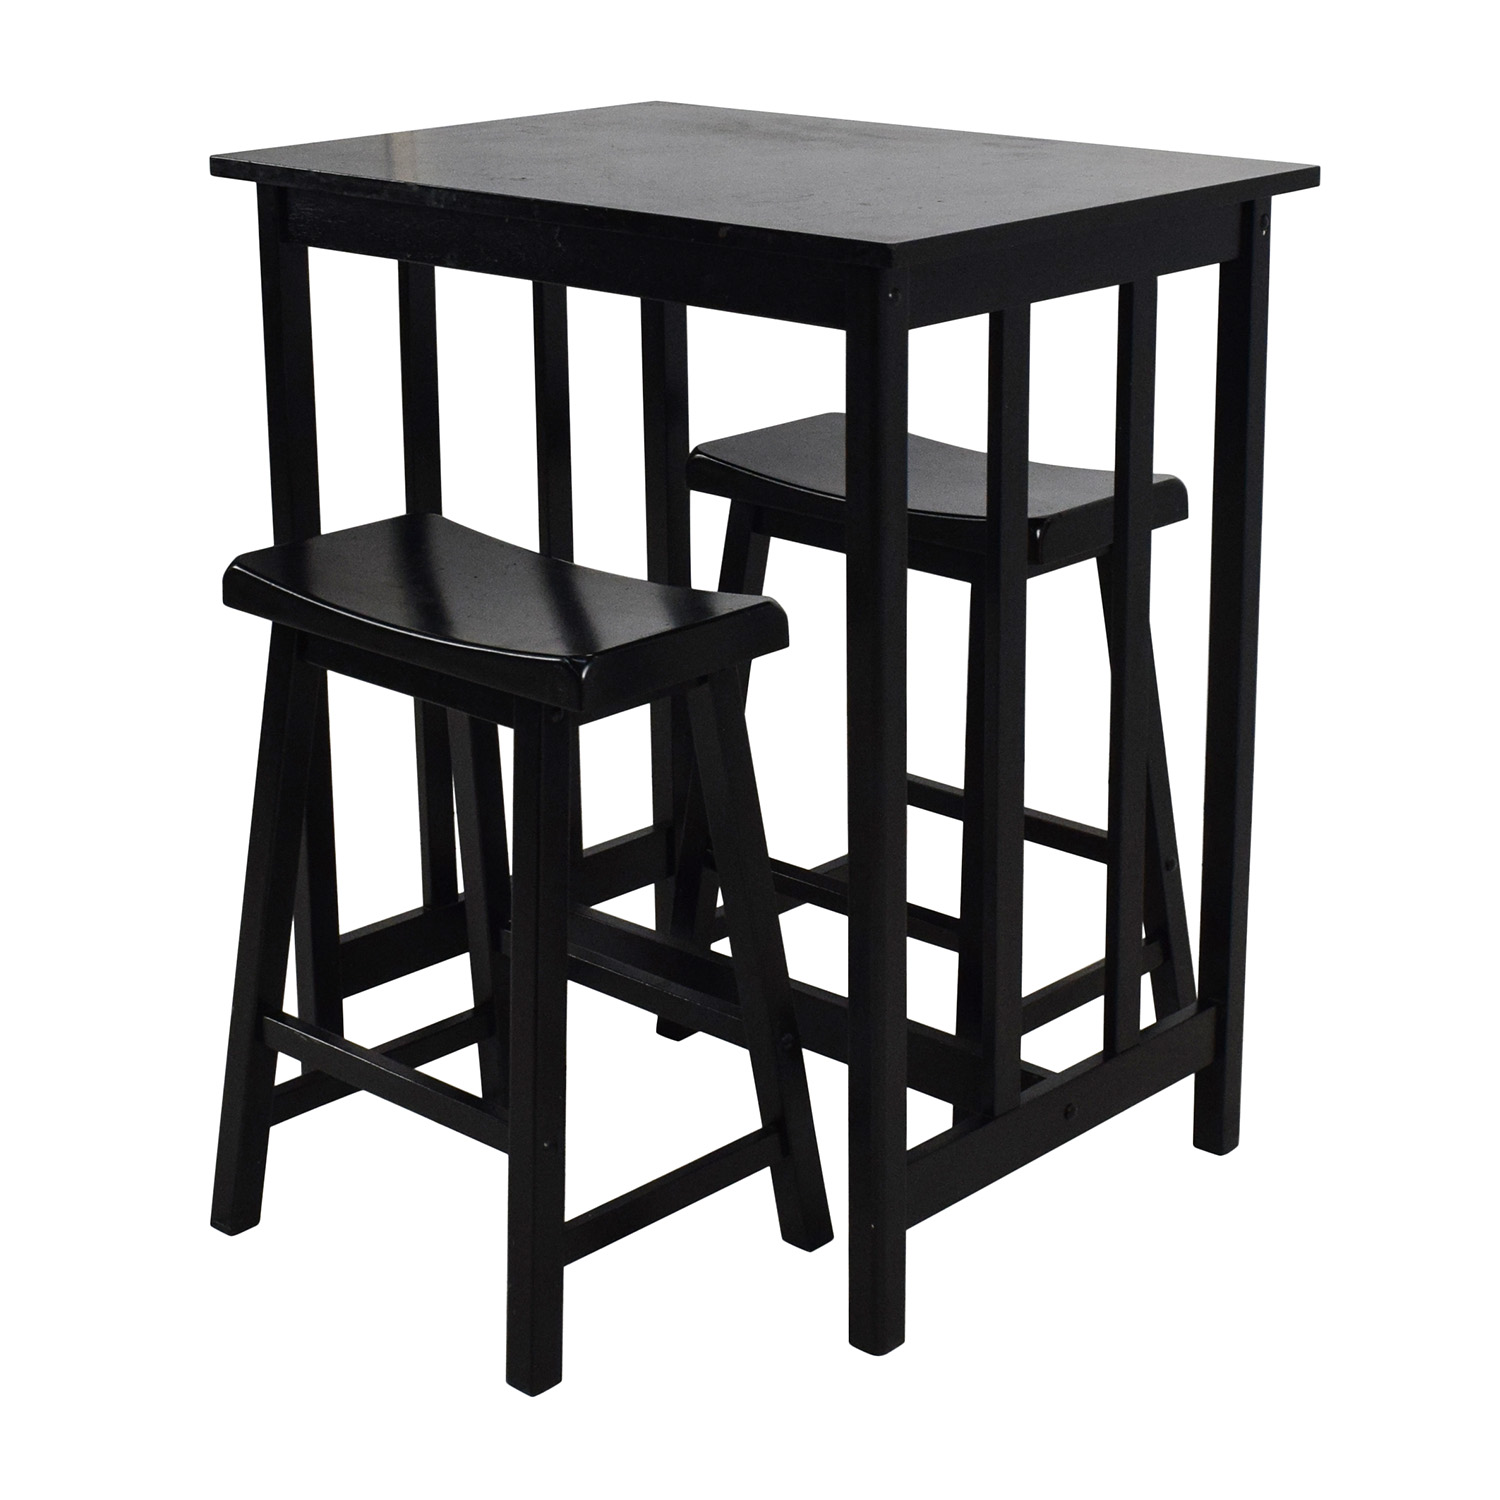 Tall Kitchen Table 66 off tall kitchen table set tables tall kitchen table set dining sets workwithnaturefo